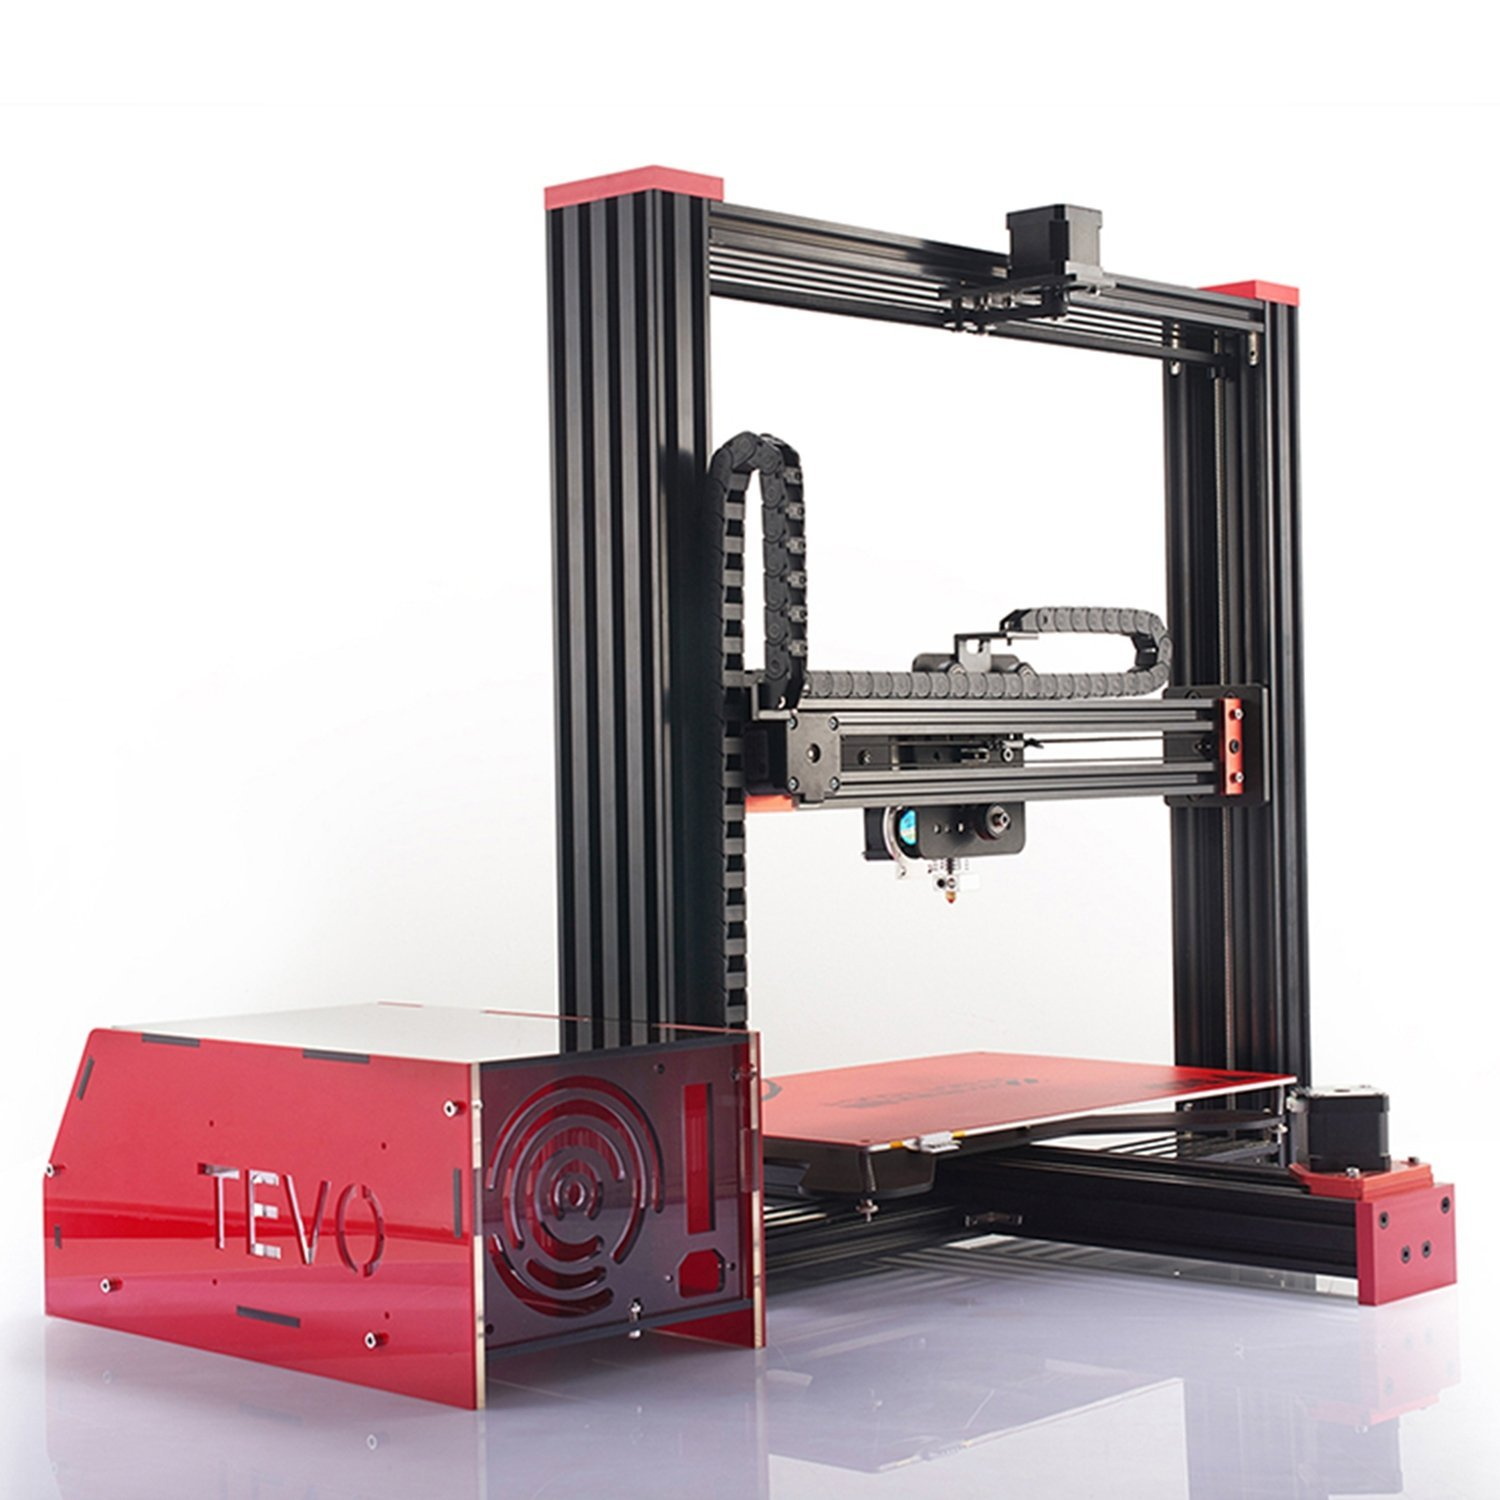 TEVO Black Widow High Performance 3D Printer Max Printing Size 370250300mm